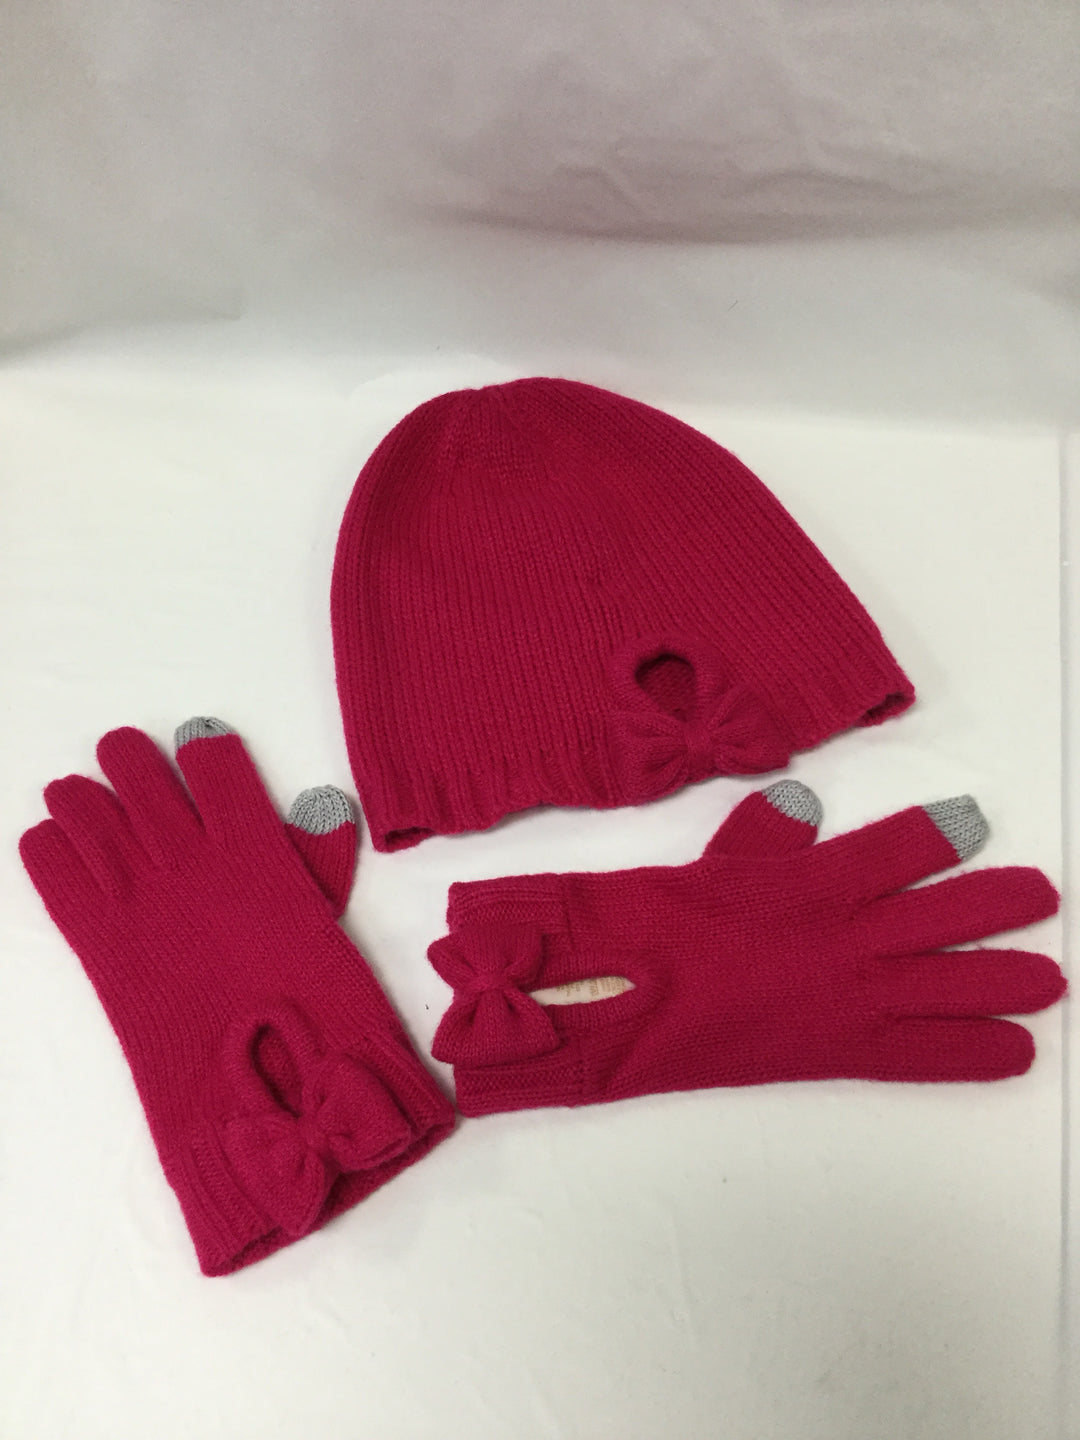 Primary Photo - BRAND: KATE SPADE <BR>STYLE: HAT <BR>COLOR: HOT PINK <BR>OTHER INFO: WITH GLOVES <BR>SKU: 155-15545-200349<BR>BOW TRIM FEATURE ON HAT AND GLOVES<BR>GREY TIP TRIM ON GLOVES<BR>EXCELLENT CONDITION <BR>